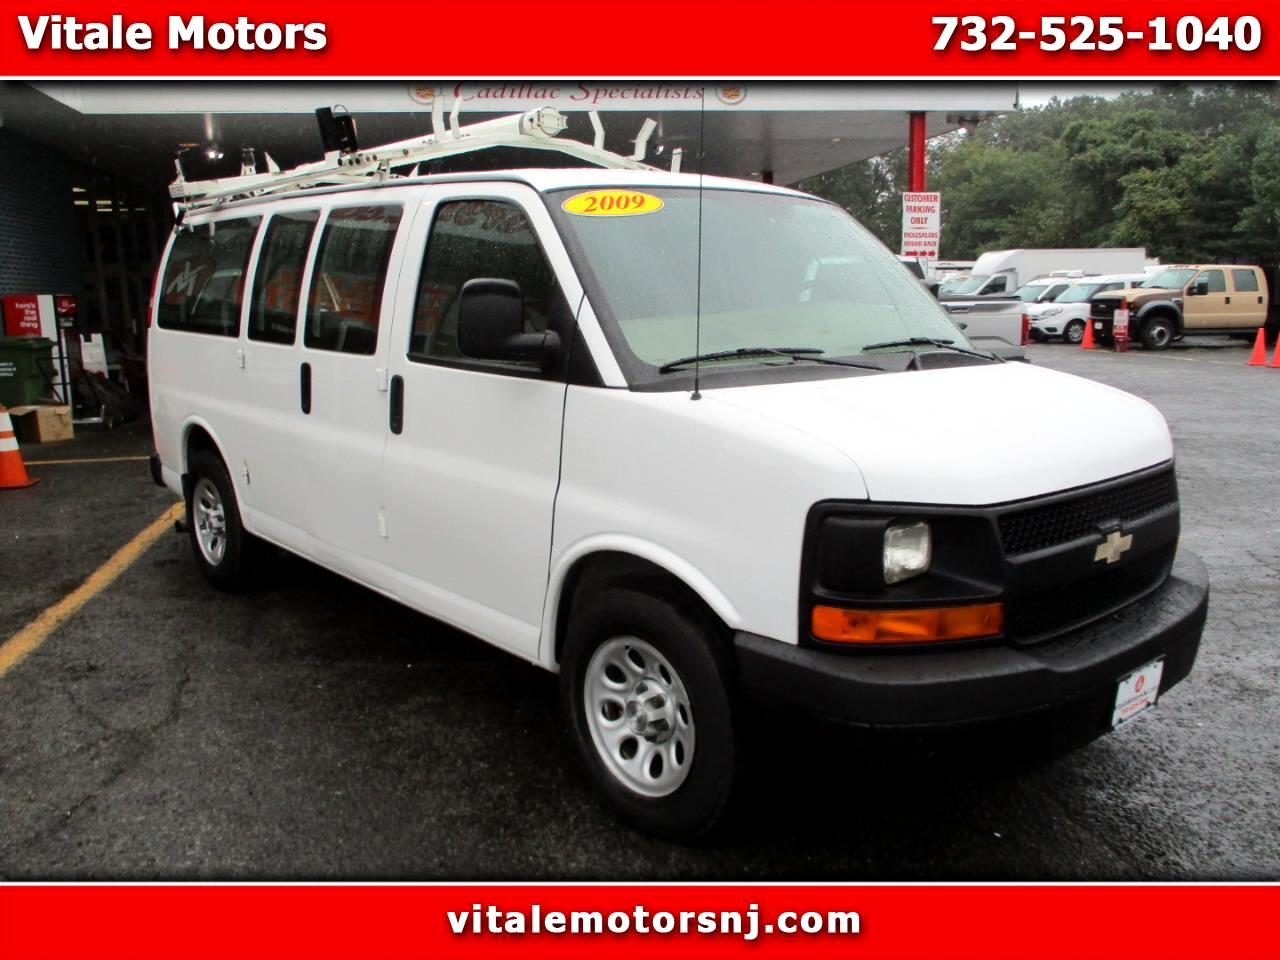 2009 Chevrolet Express 1500 CARGO VAN W/ SHELVES